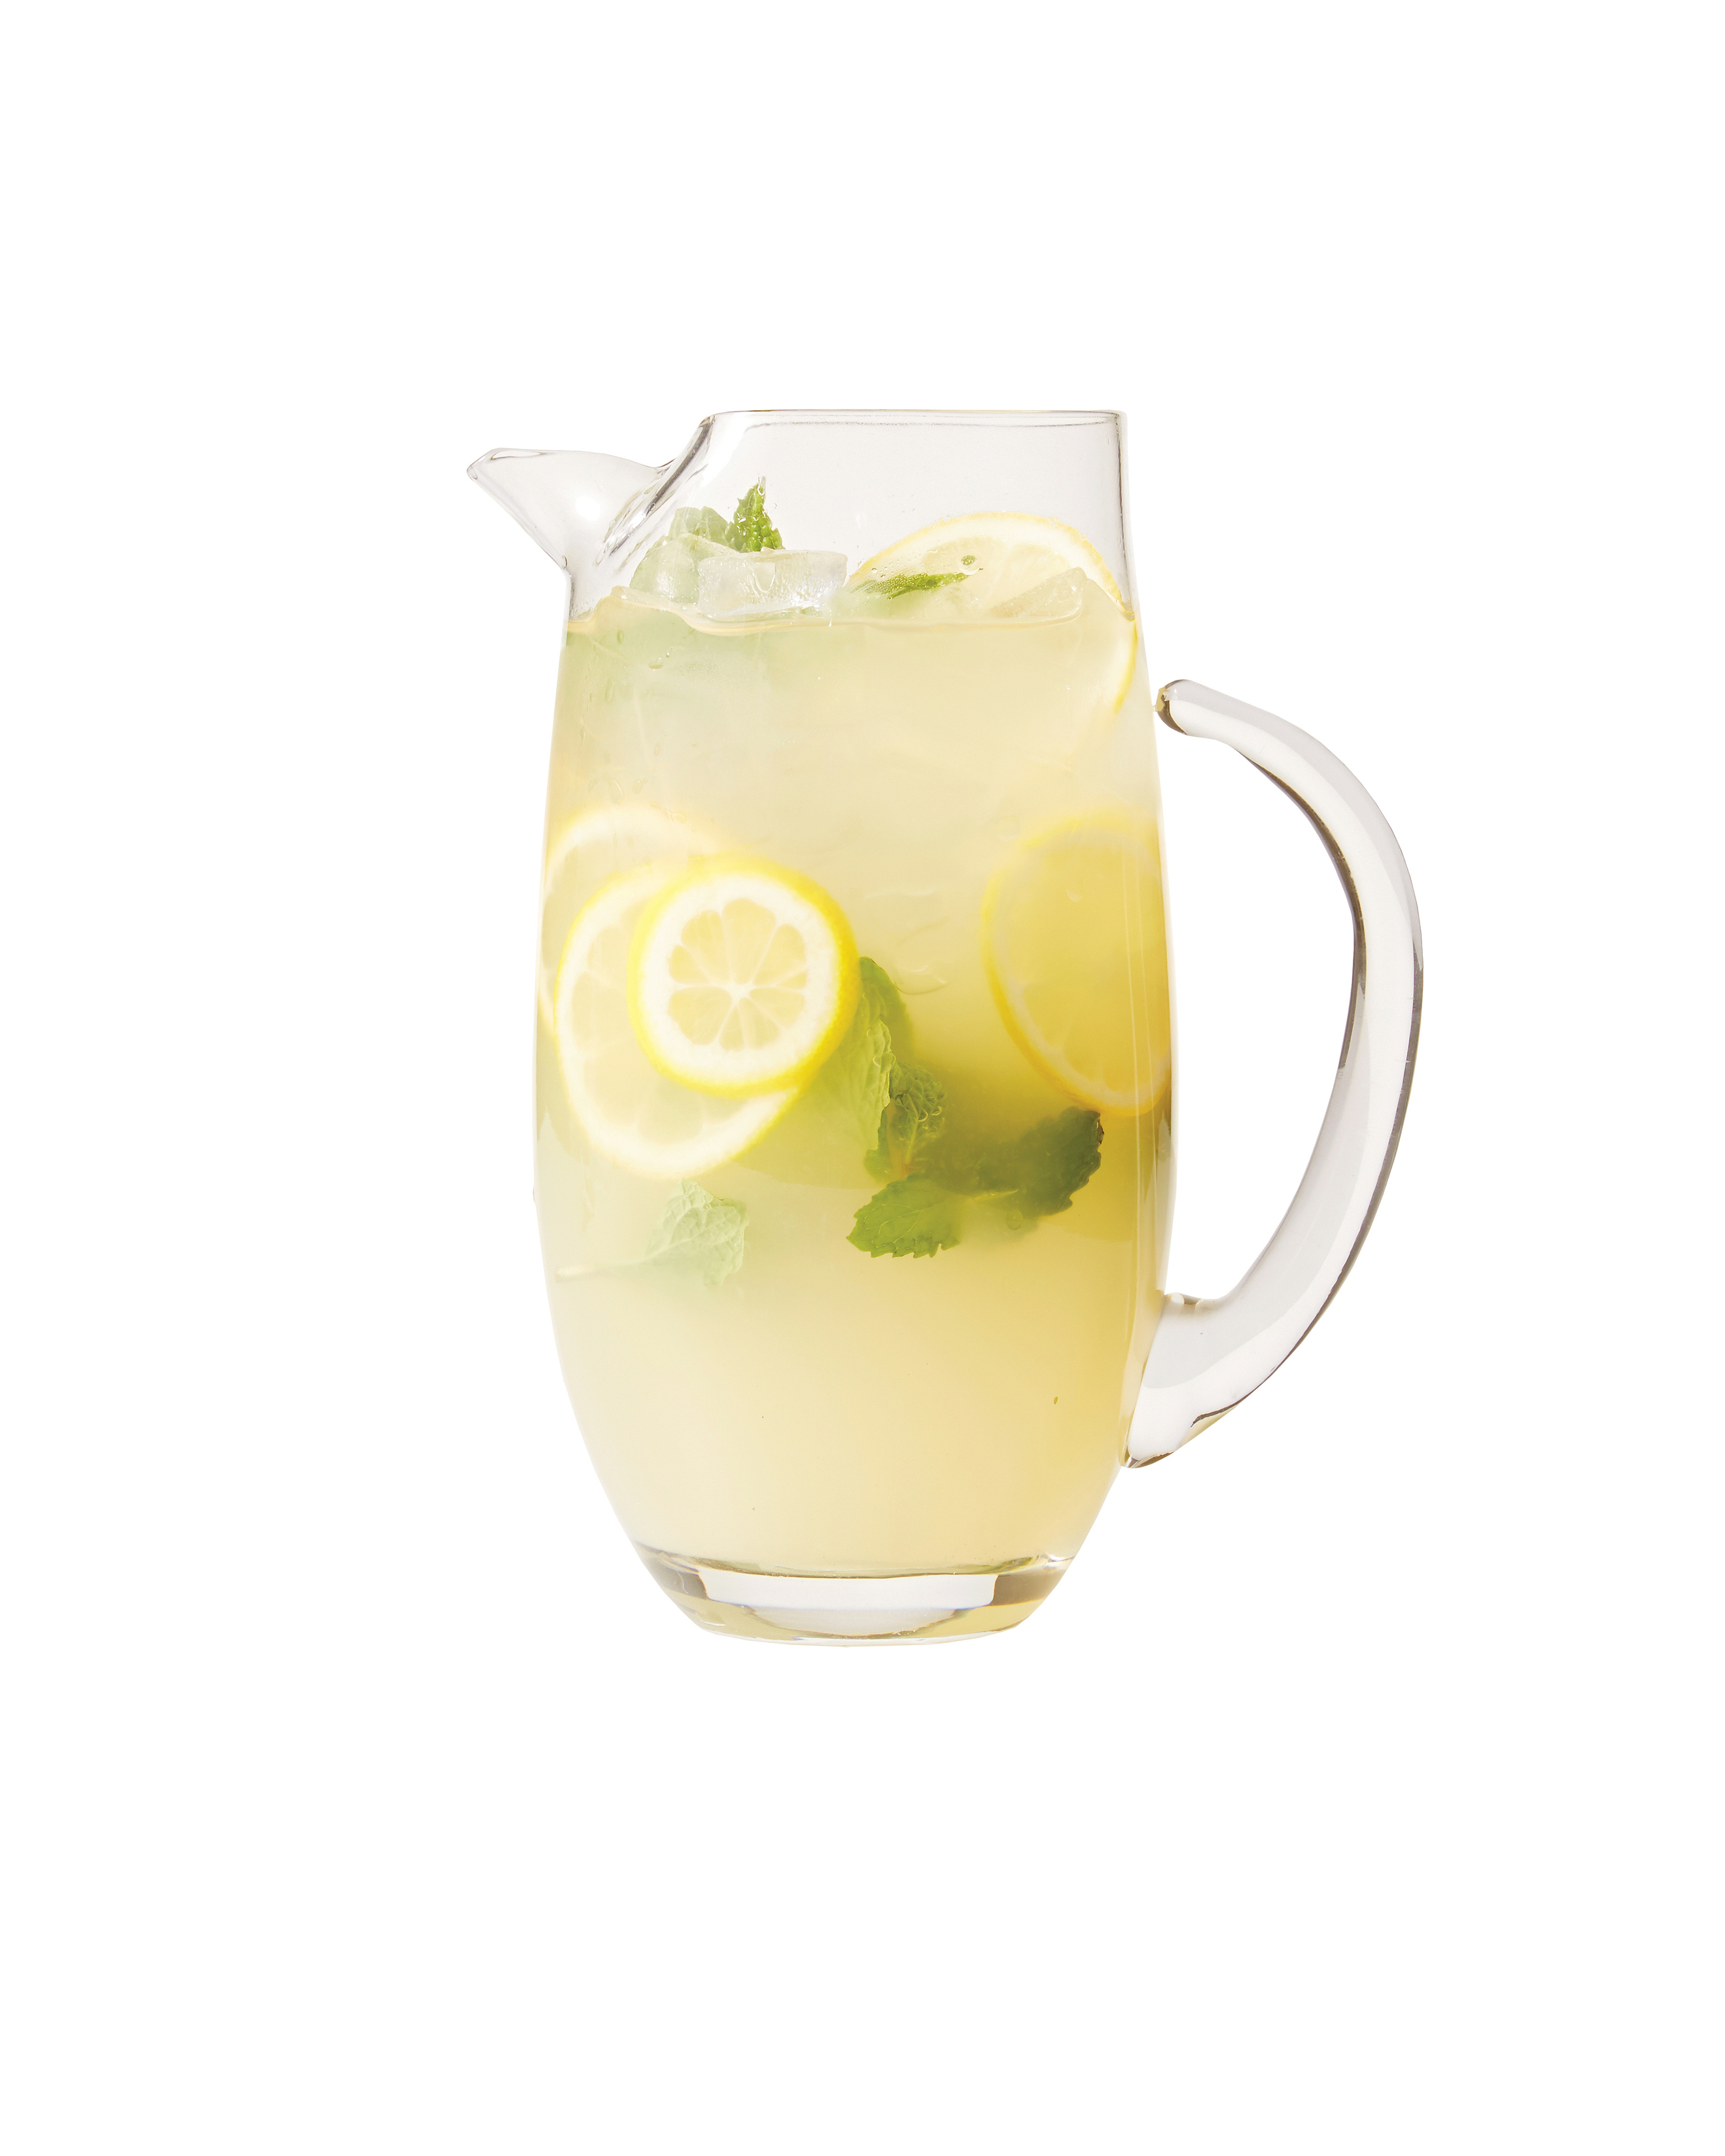 Martha's Extra-Lemony Lemonade